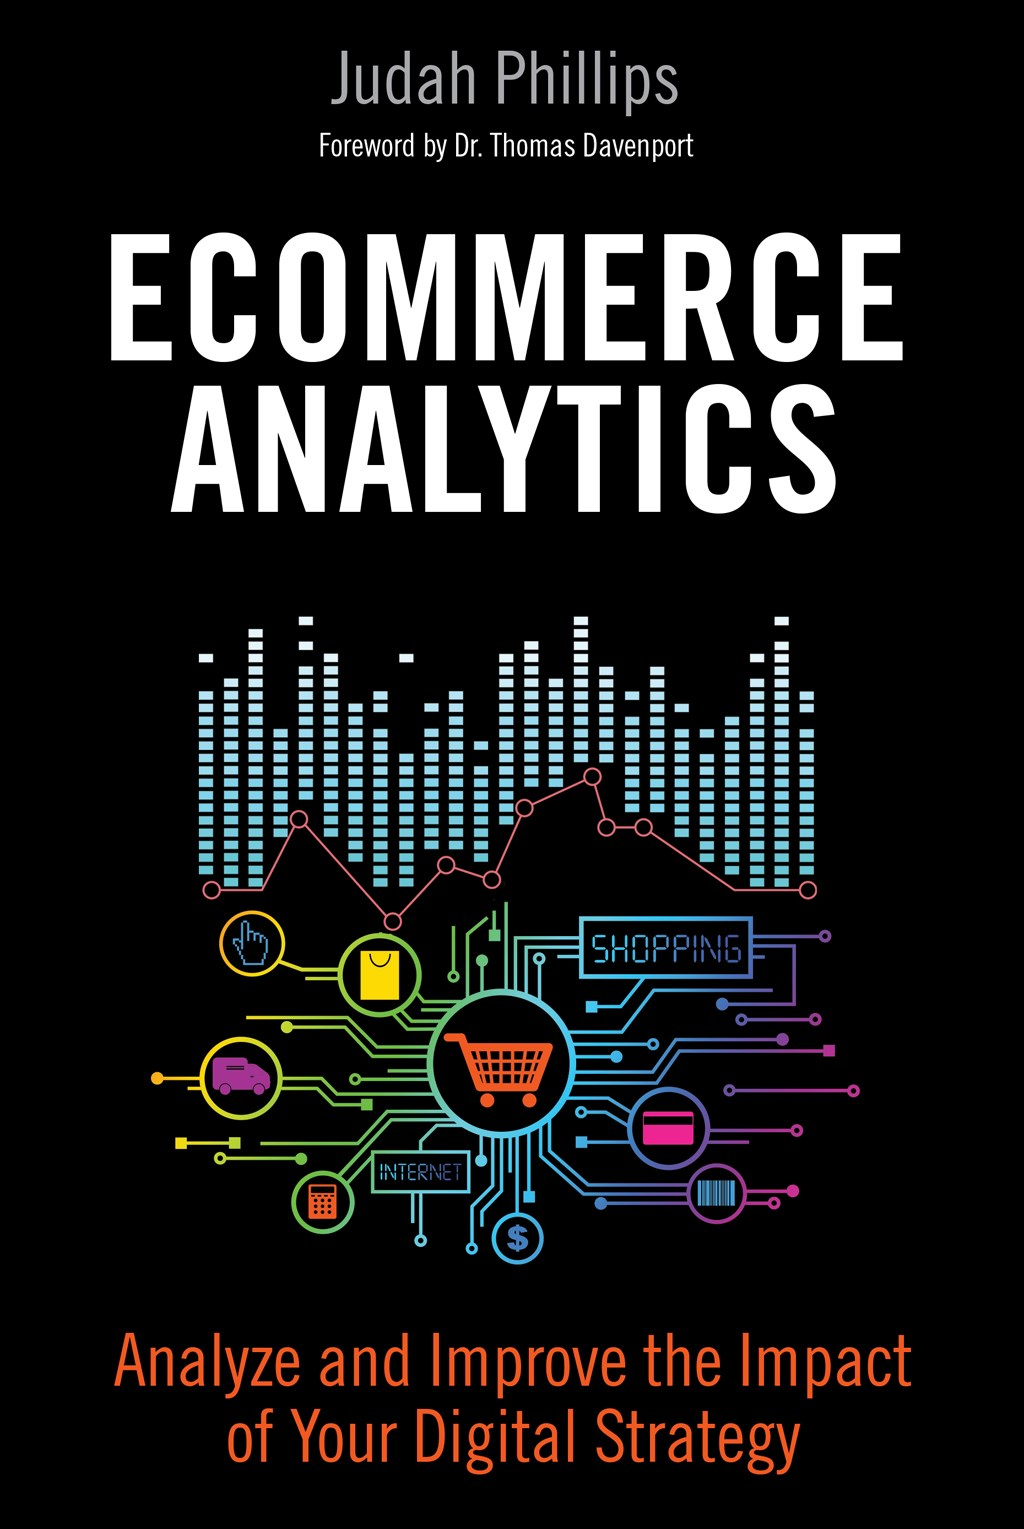 Ecommerce Analytics: Analyze and Improve the Impact of Your Digital Strategy